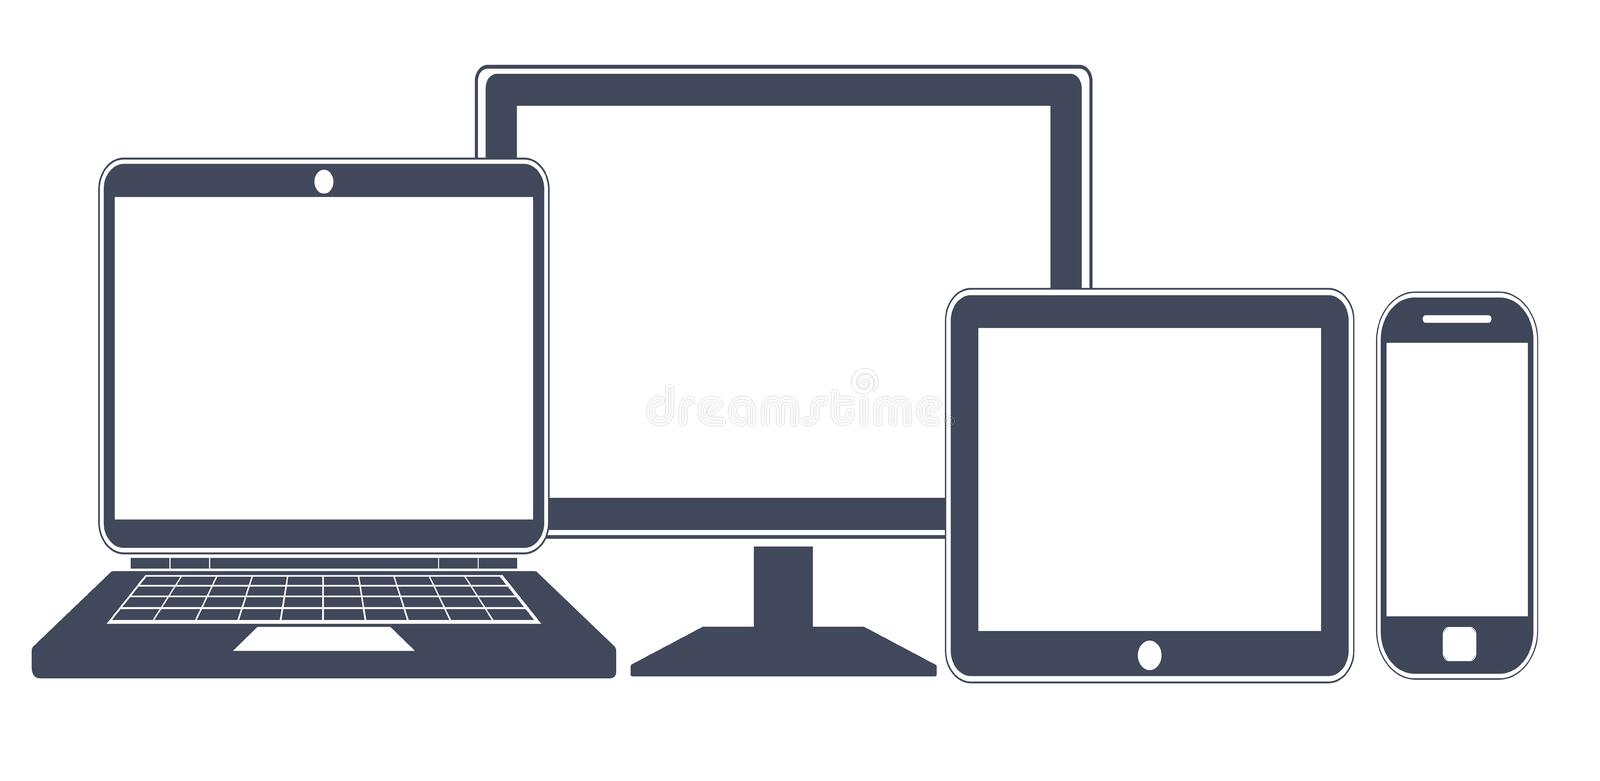 Device Icons, smart phone, tablet, laptop and desktop computer. Vector illustration of responsive web design vector illustration